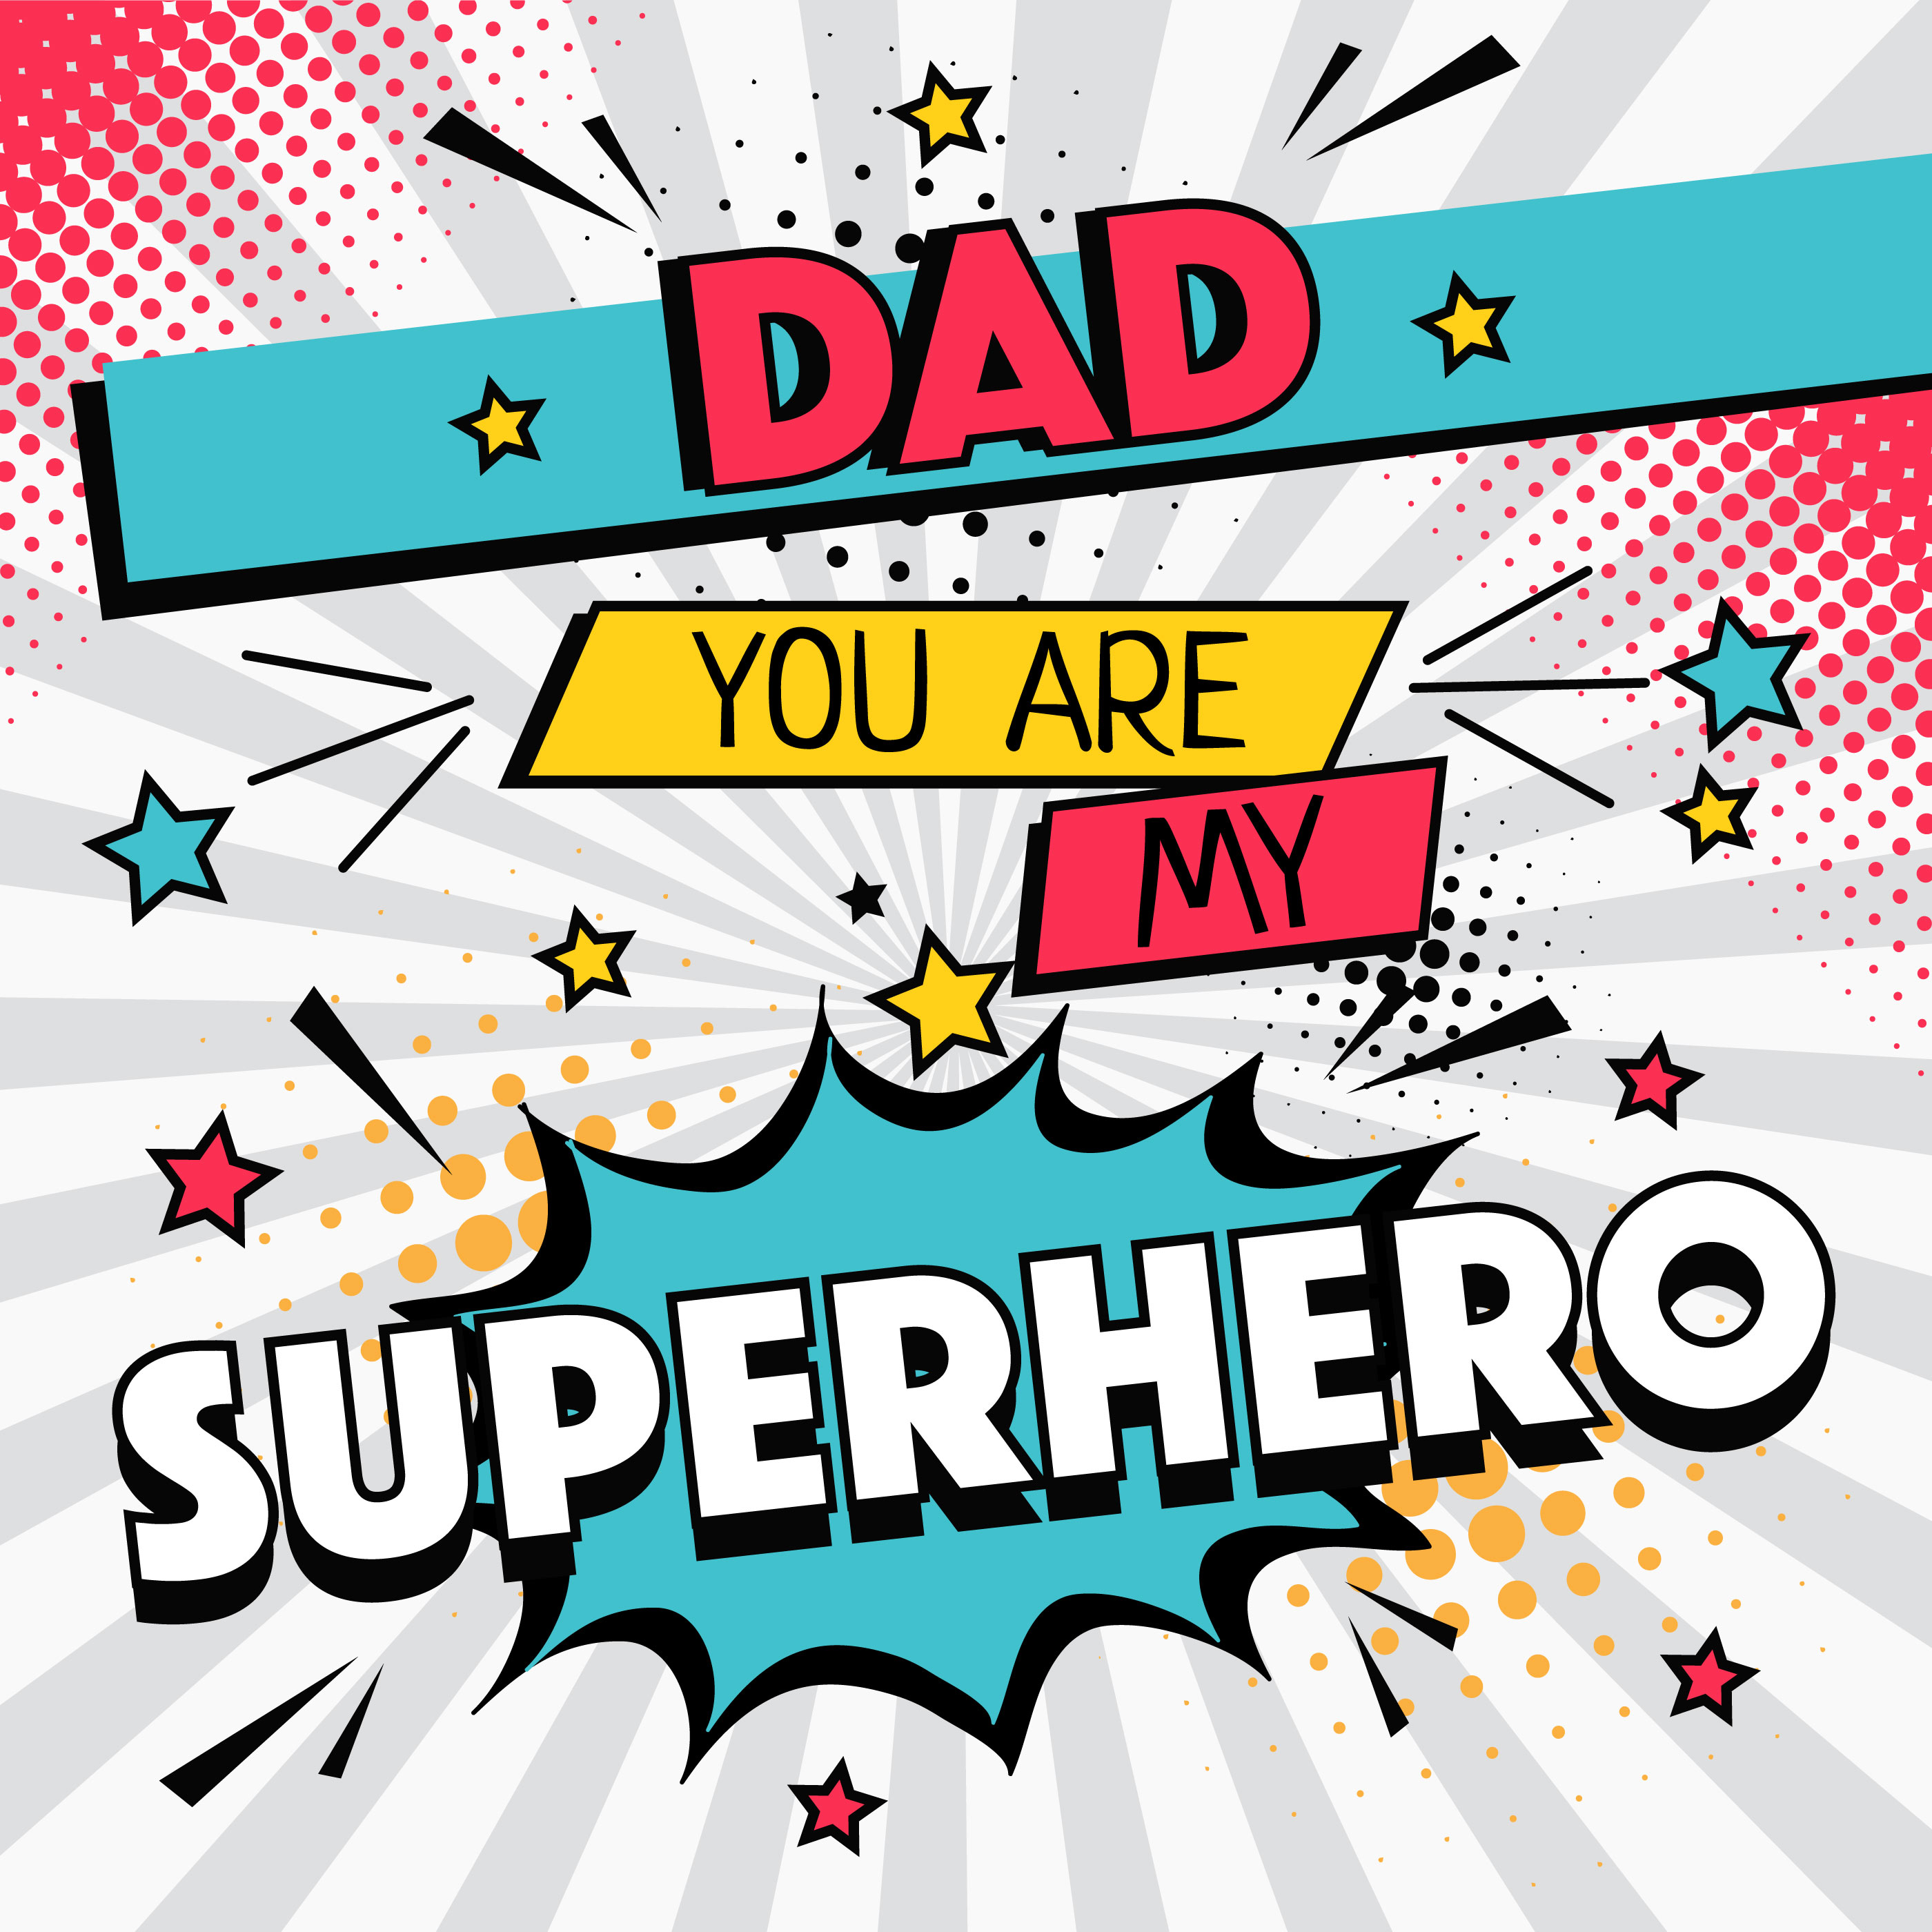 All pro dad clipart black and white Dad Free Vector Art - (19,657 Free Downloads) black and white